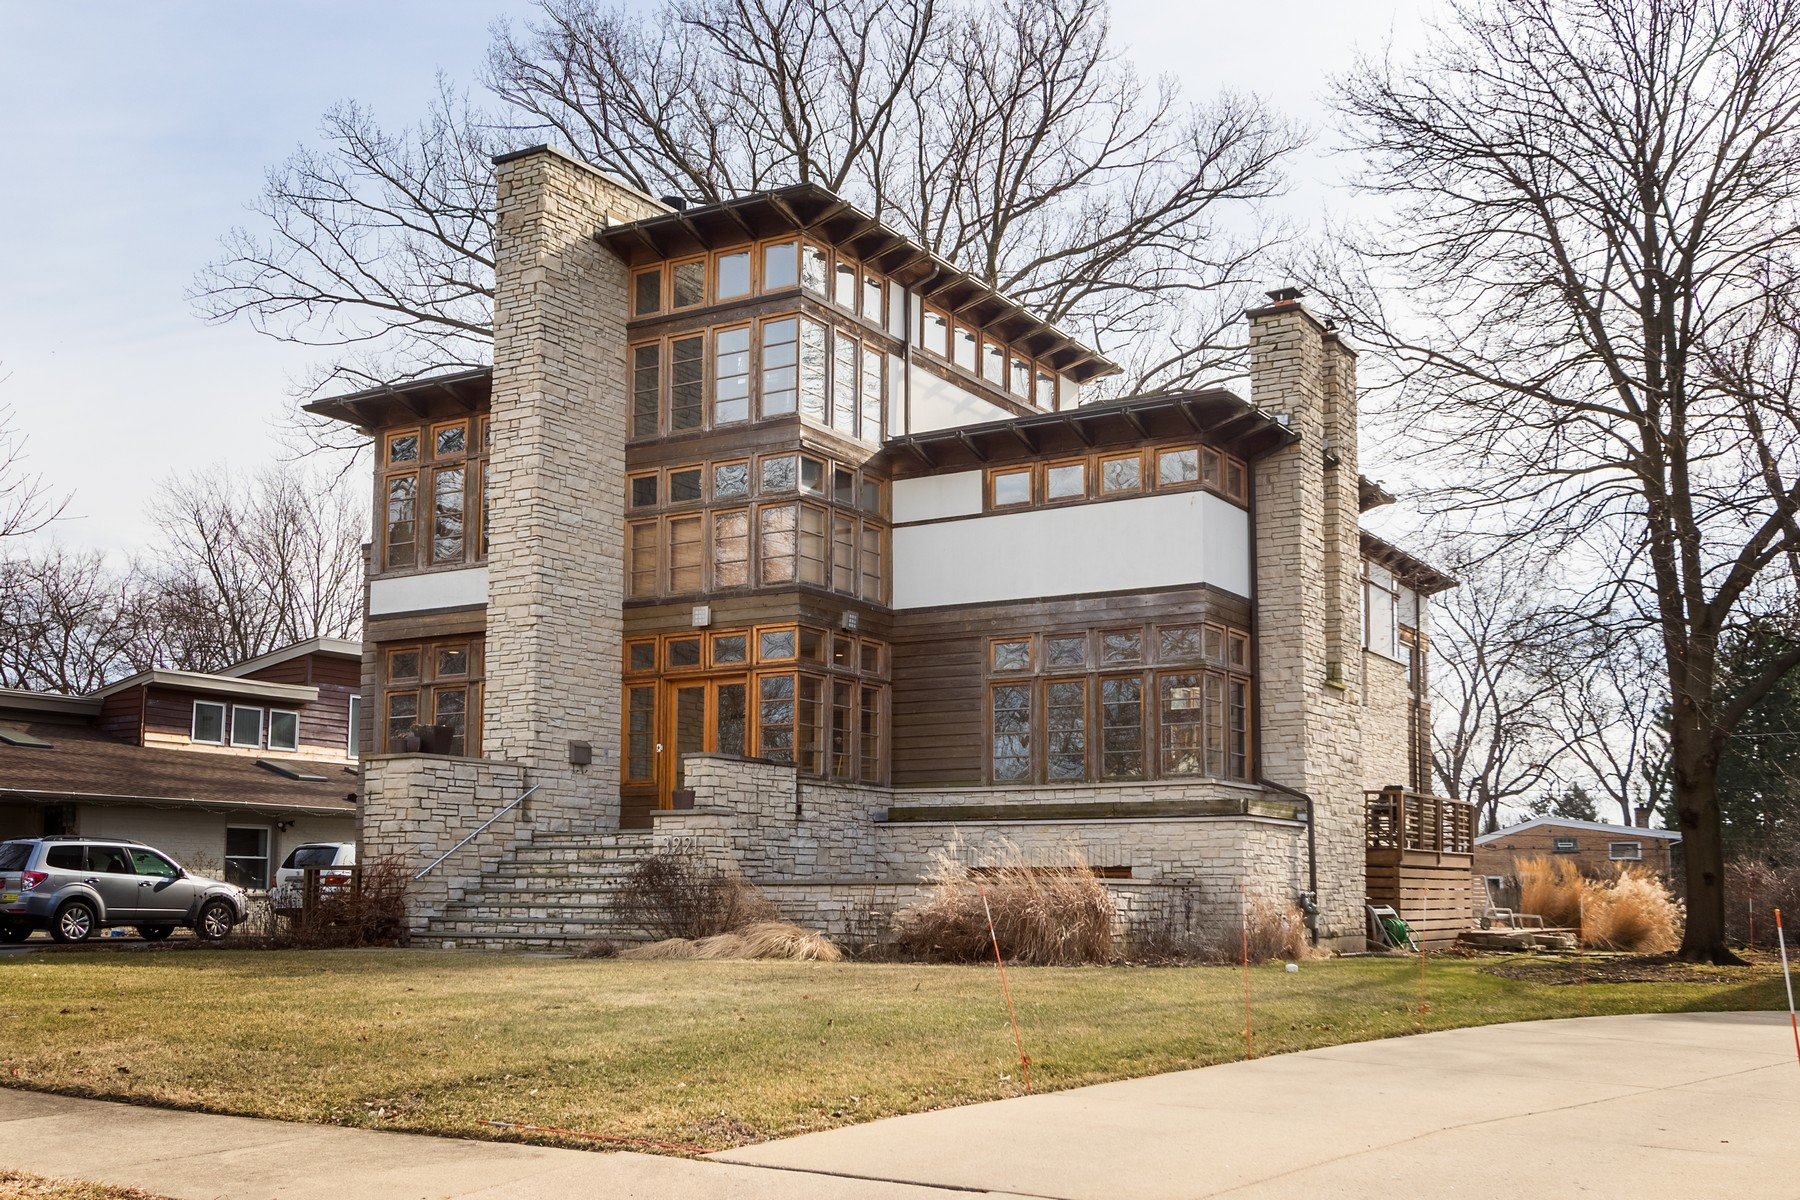 Single Family Home for Sale at One of a Kind, Contemporary Wilmette Home 3221 Wilmette Avenue Wilmette, Illinois 60091 United States